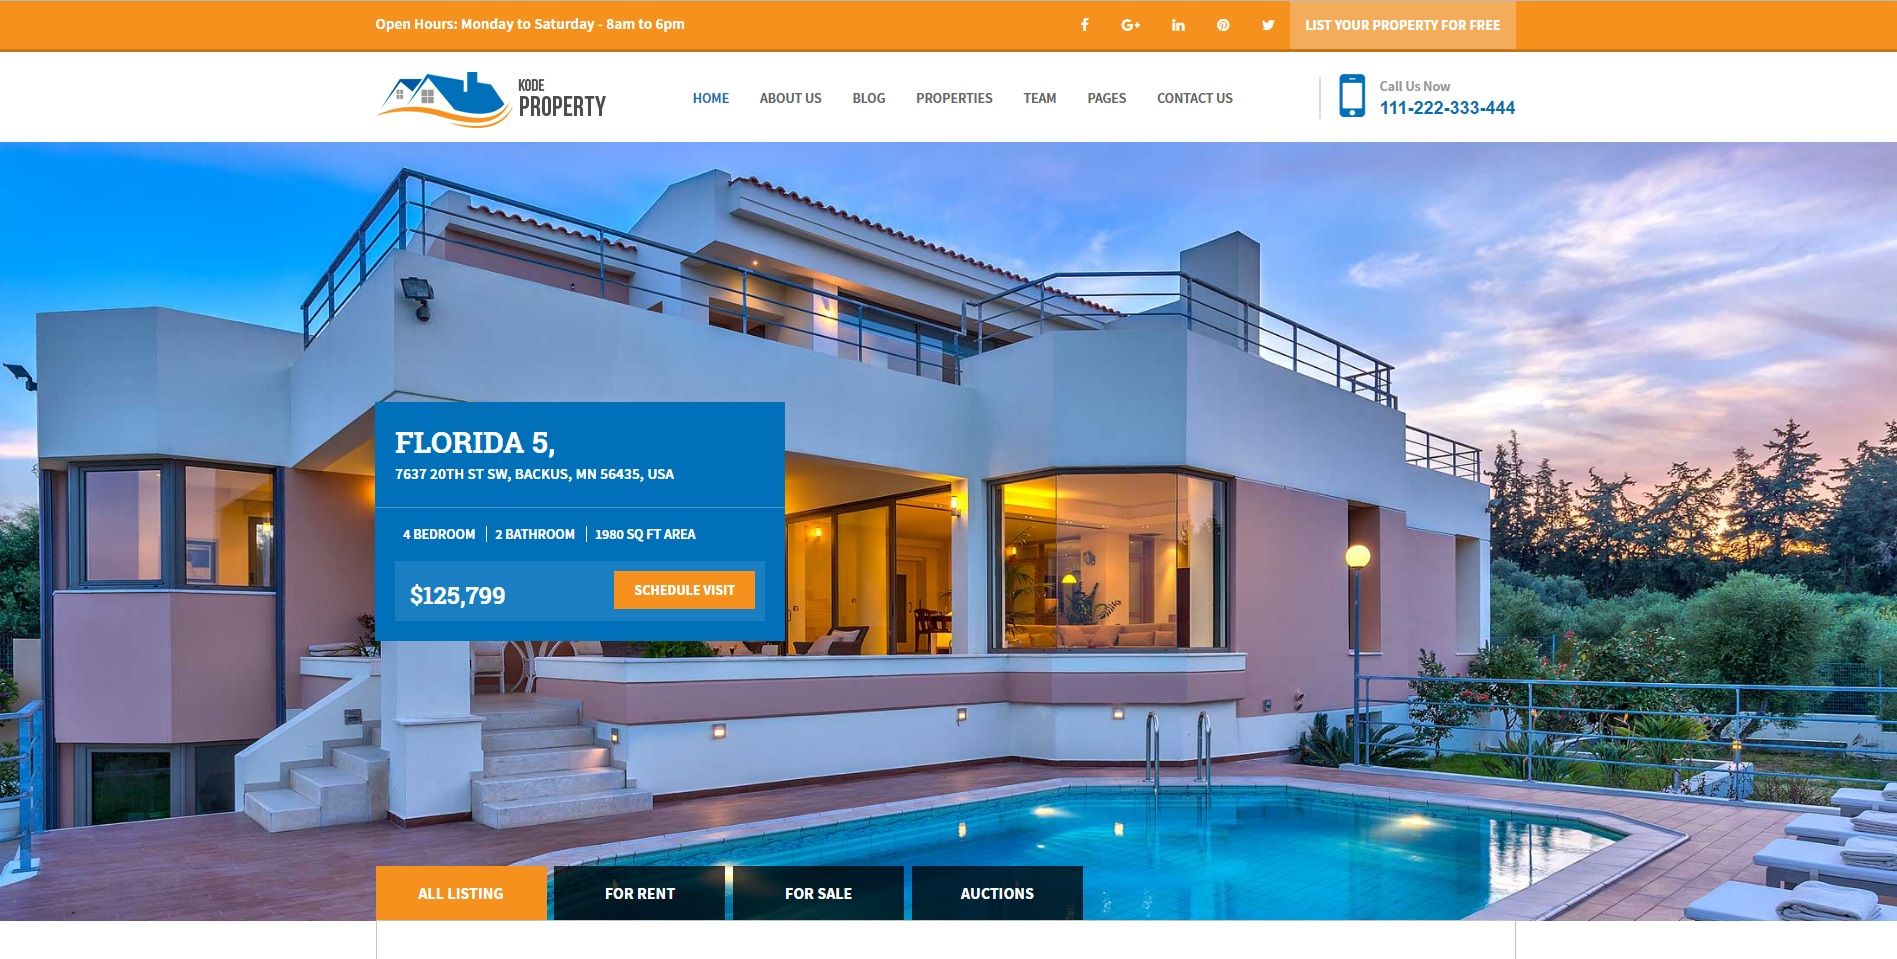 Kode Property Listing - Real Estate WordPress Template